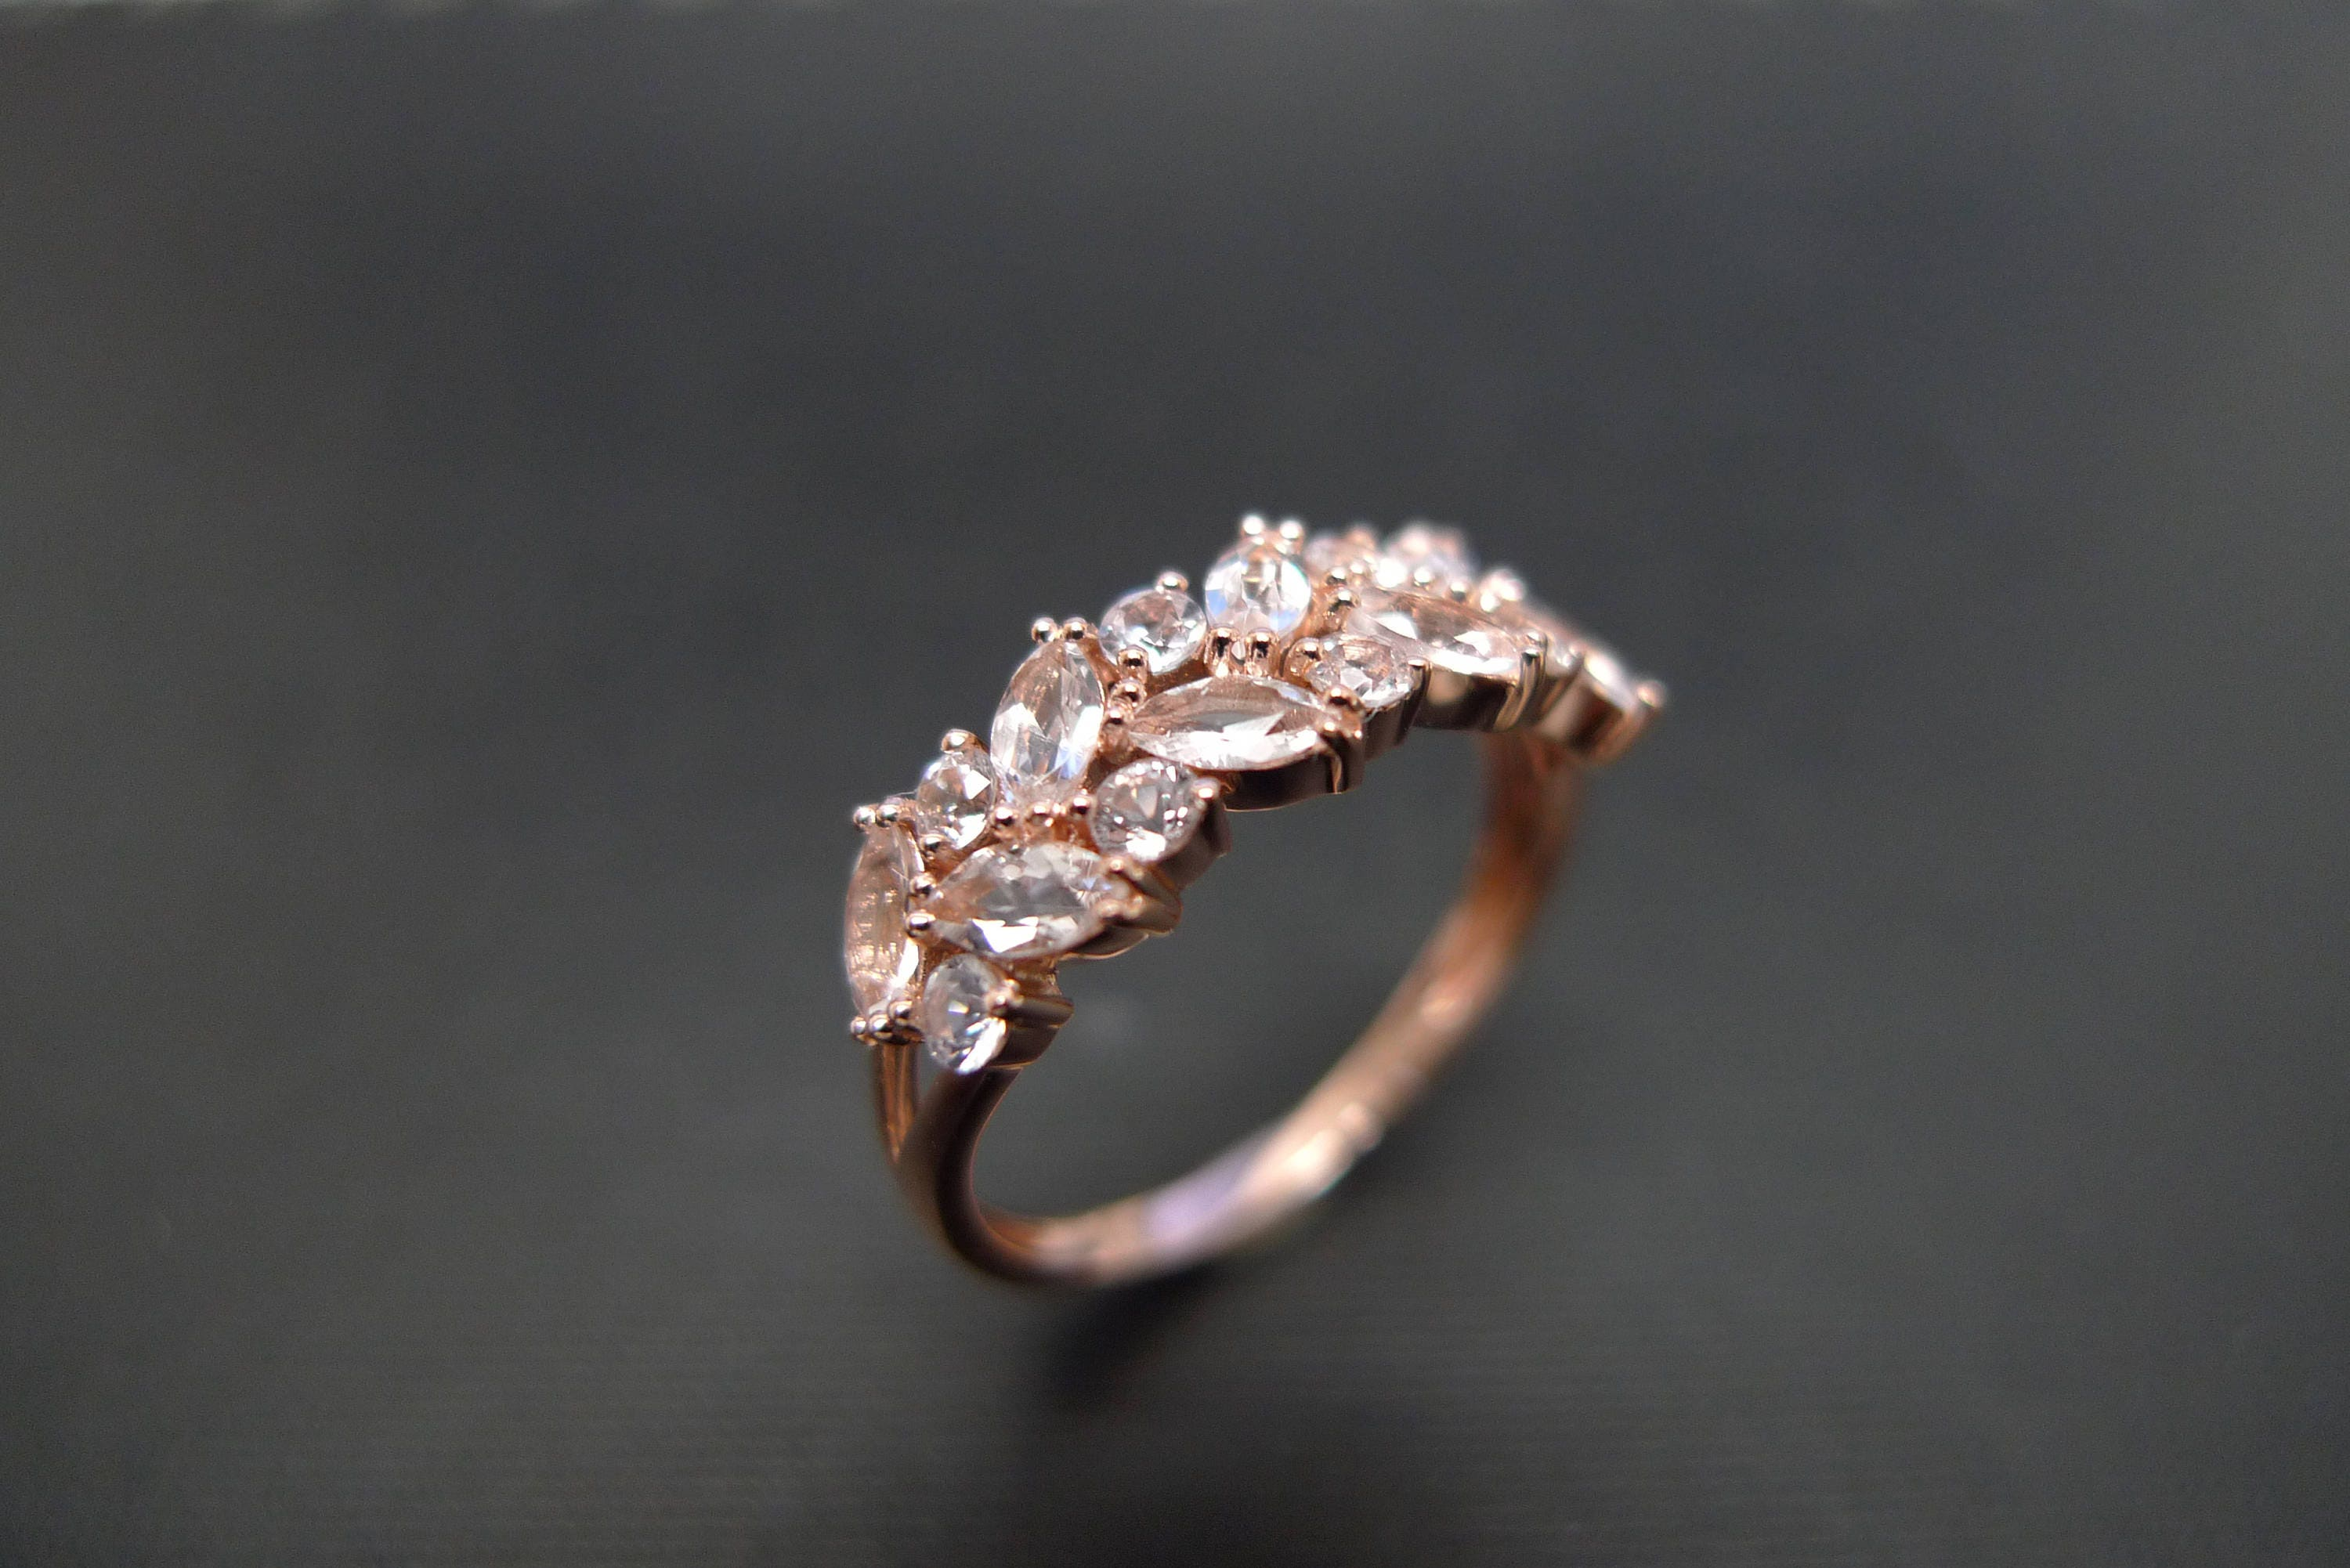 rings pave wedding under micro diamond morganite fullxfull face halo gold listing il zoom rose encrusted